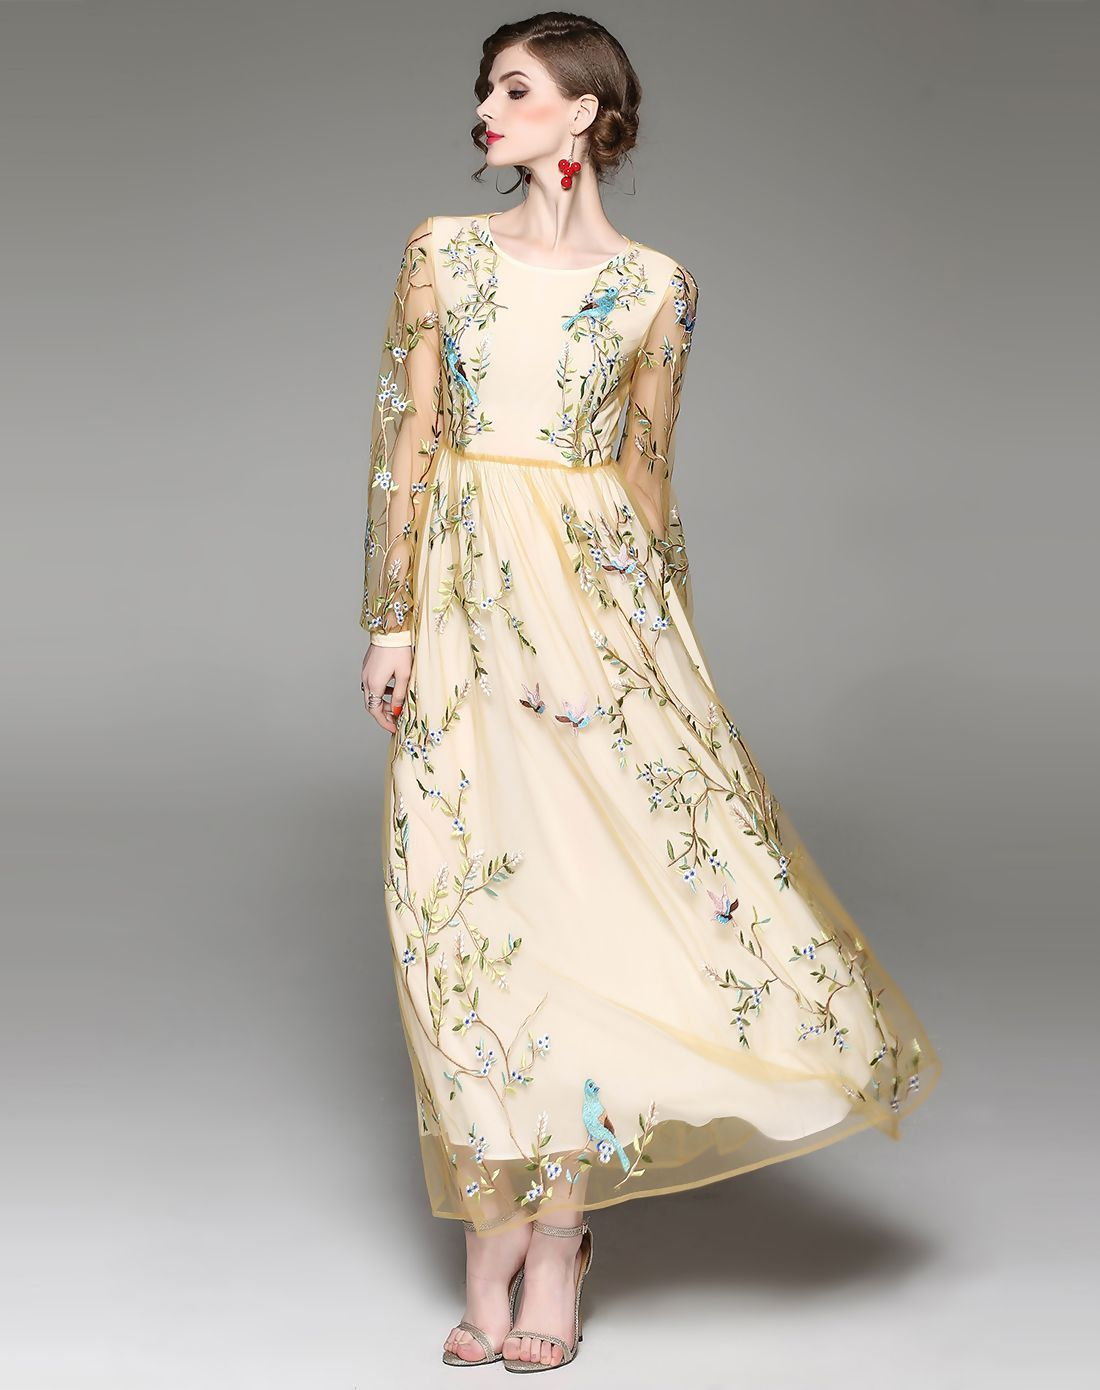 12bcd9062f4f  VIPme Apricot Embroidery Gauze Ankle Length Dress ❤ Get more outfit ideas  and style inspiration from fashion designers at VIPme.com.